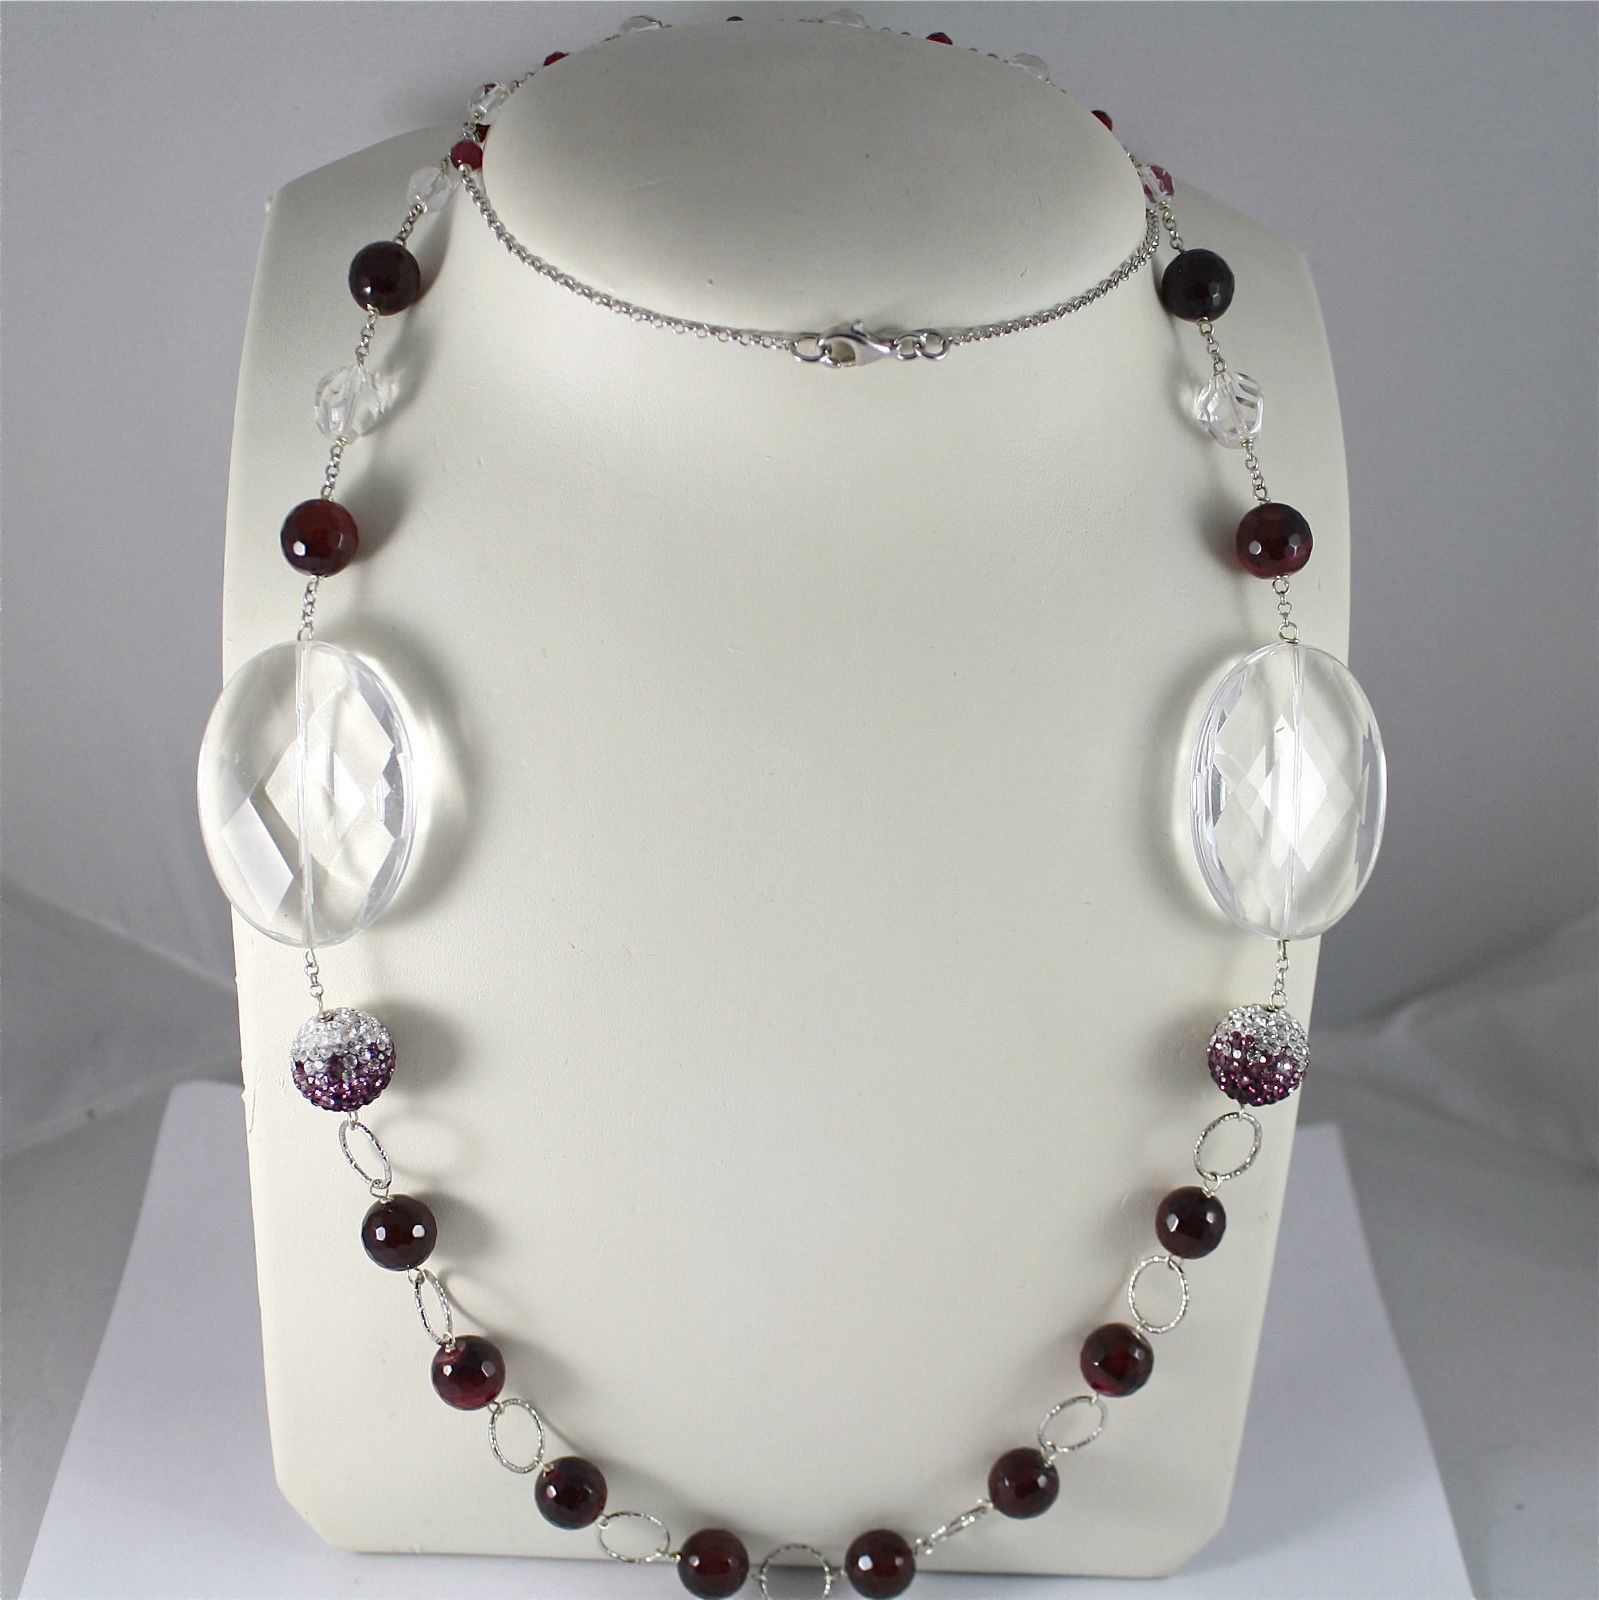 .925 SILVER NECKLACE WITH FACETED CRISTALS, IN 5 DIFFERENT SIZE, STUDDED BALLS